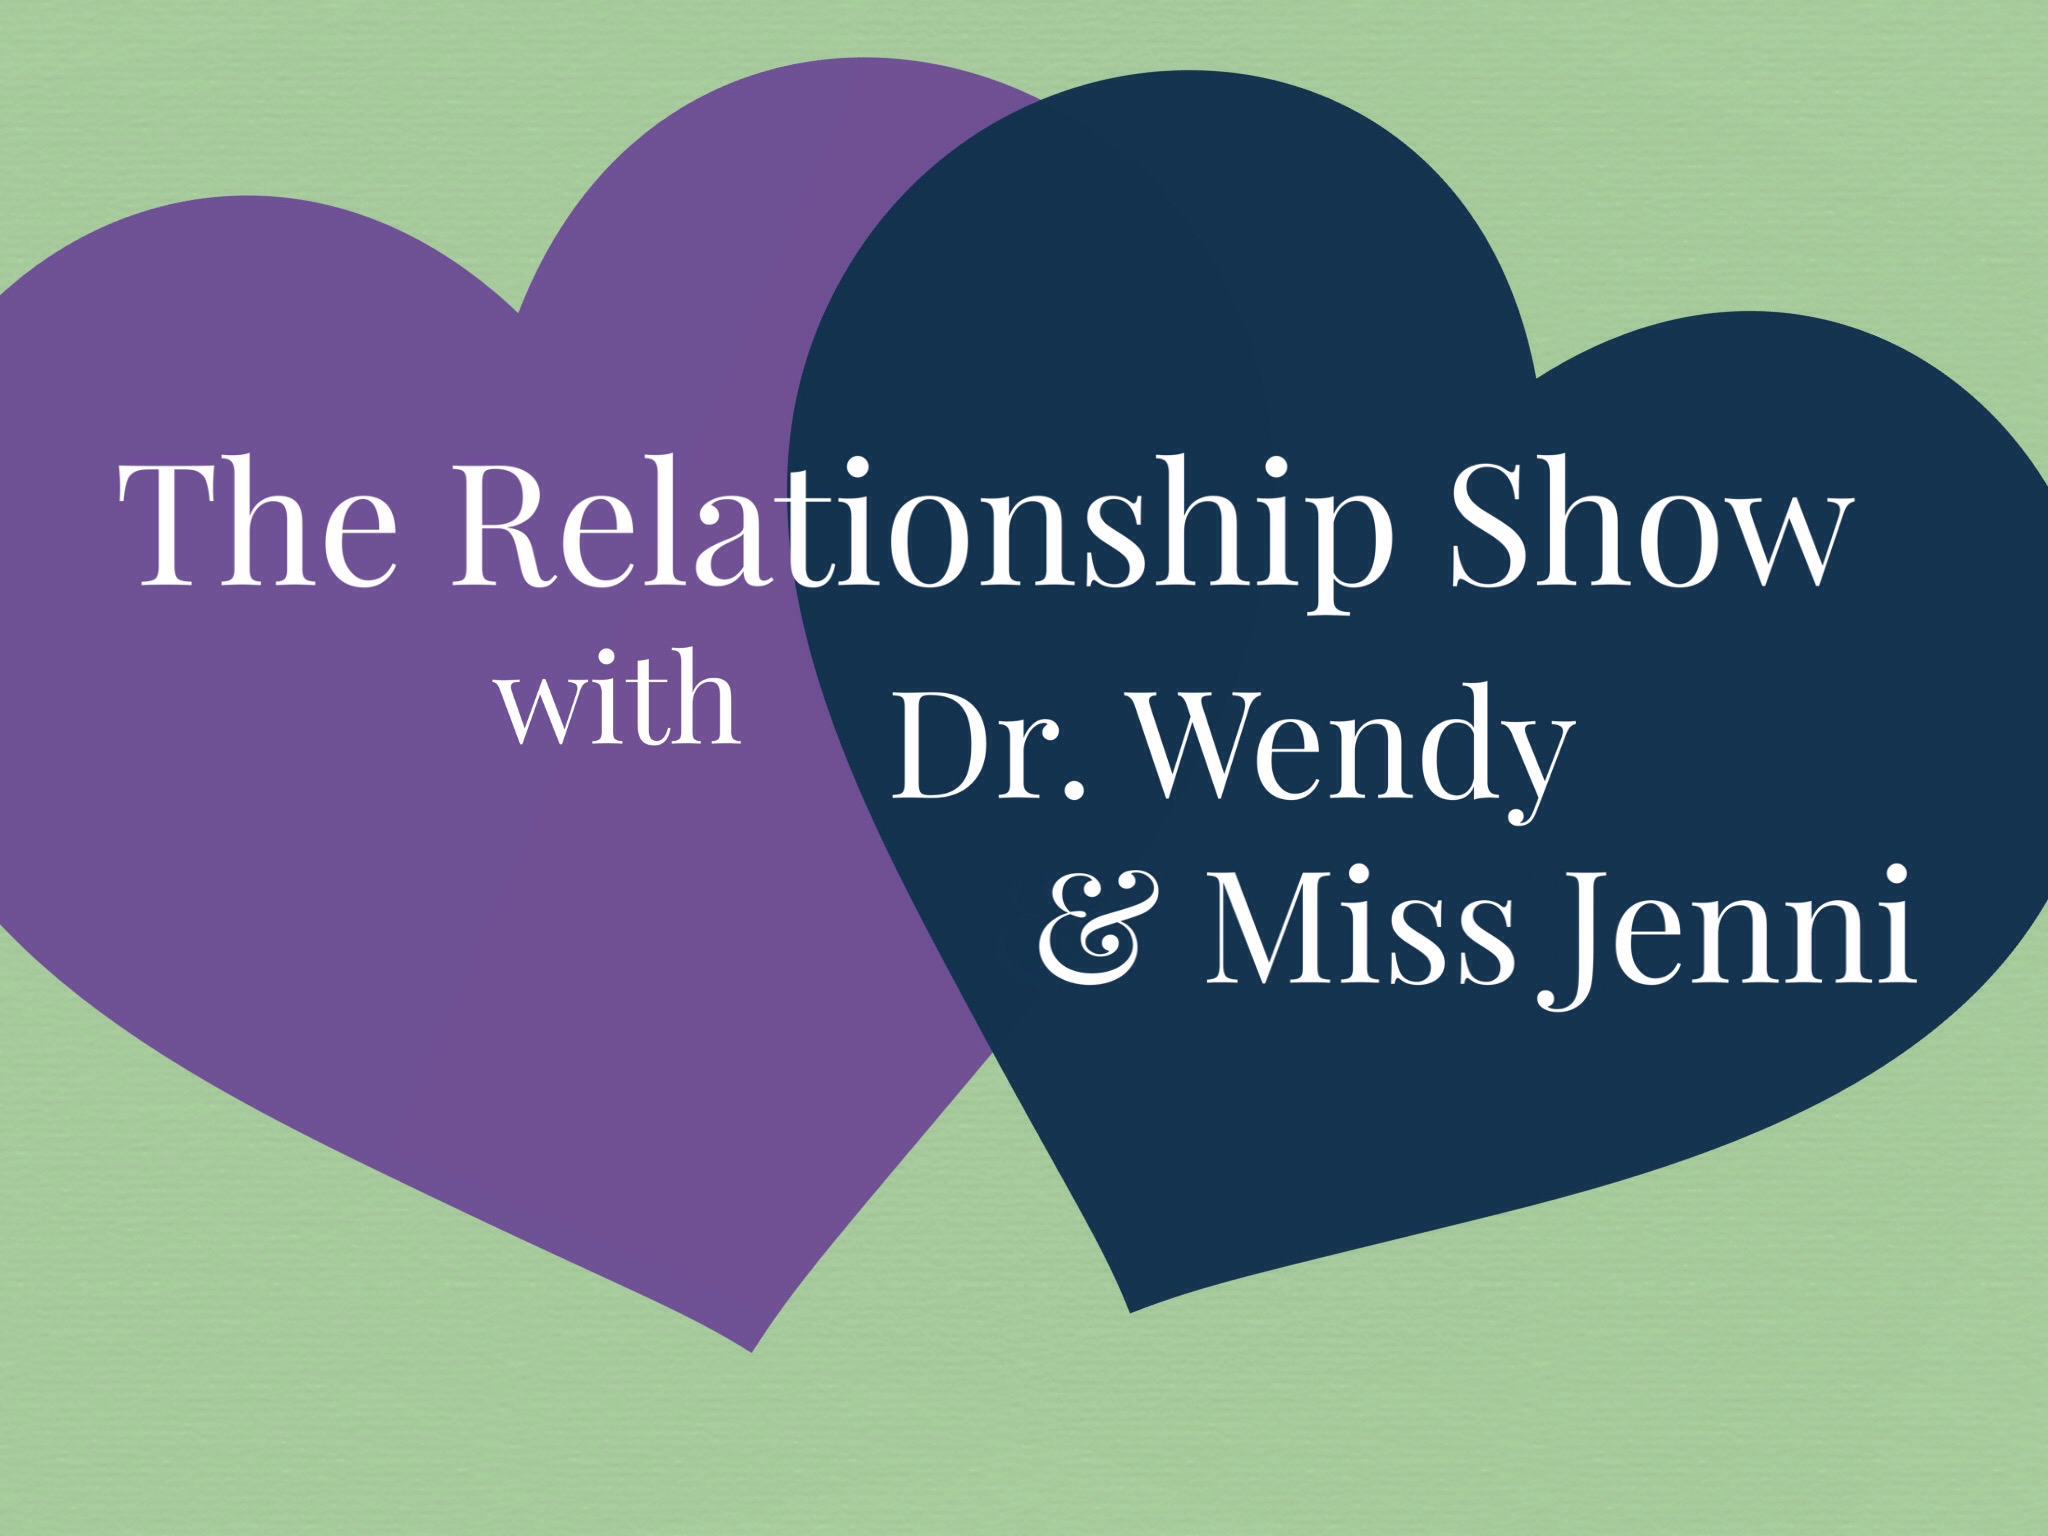 The Relationship Show with Dr. Wendy & Miss Jenni -